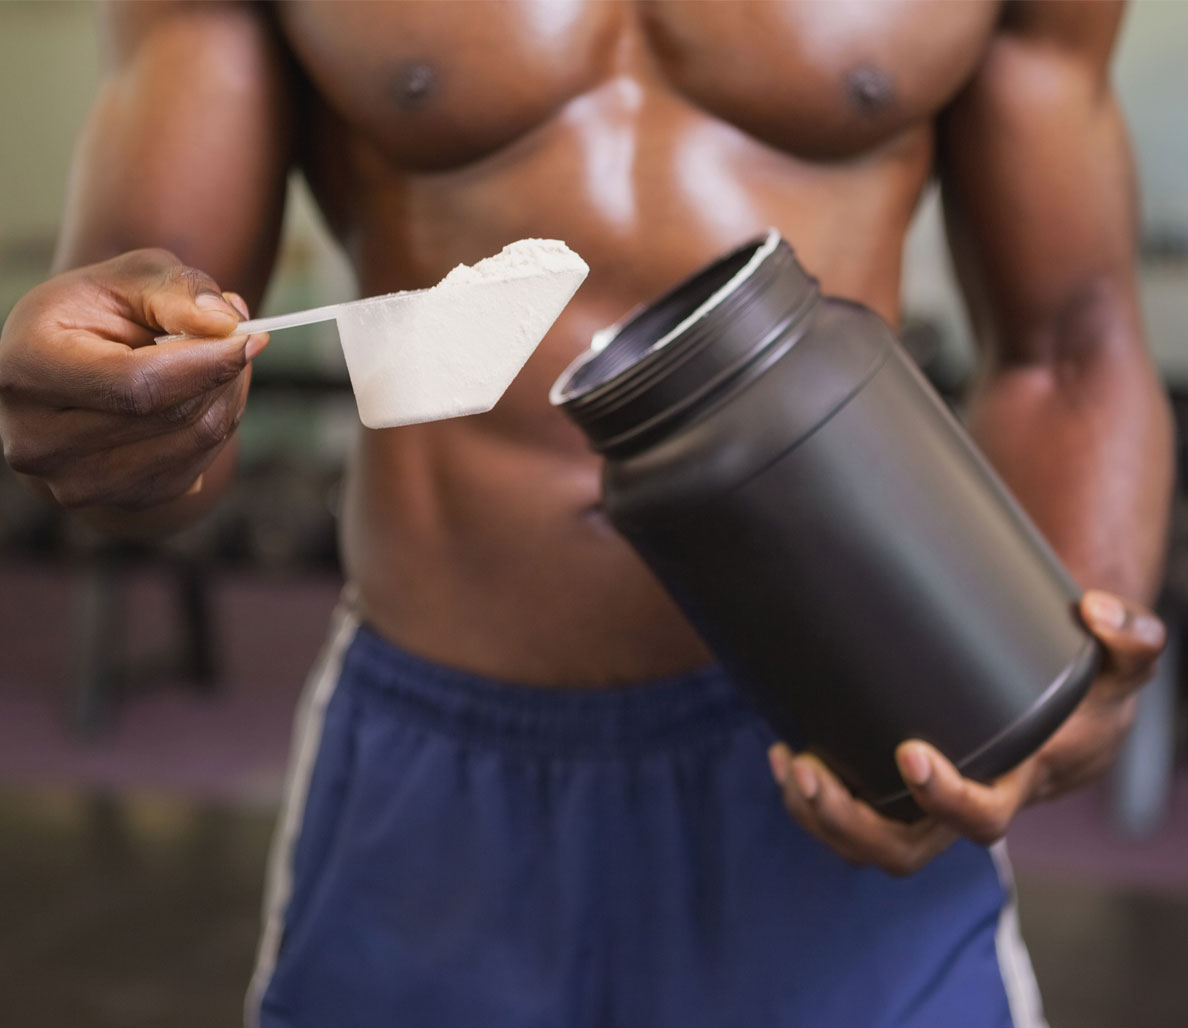 Q&A: What Supplements Should I Take?